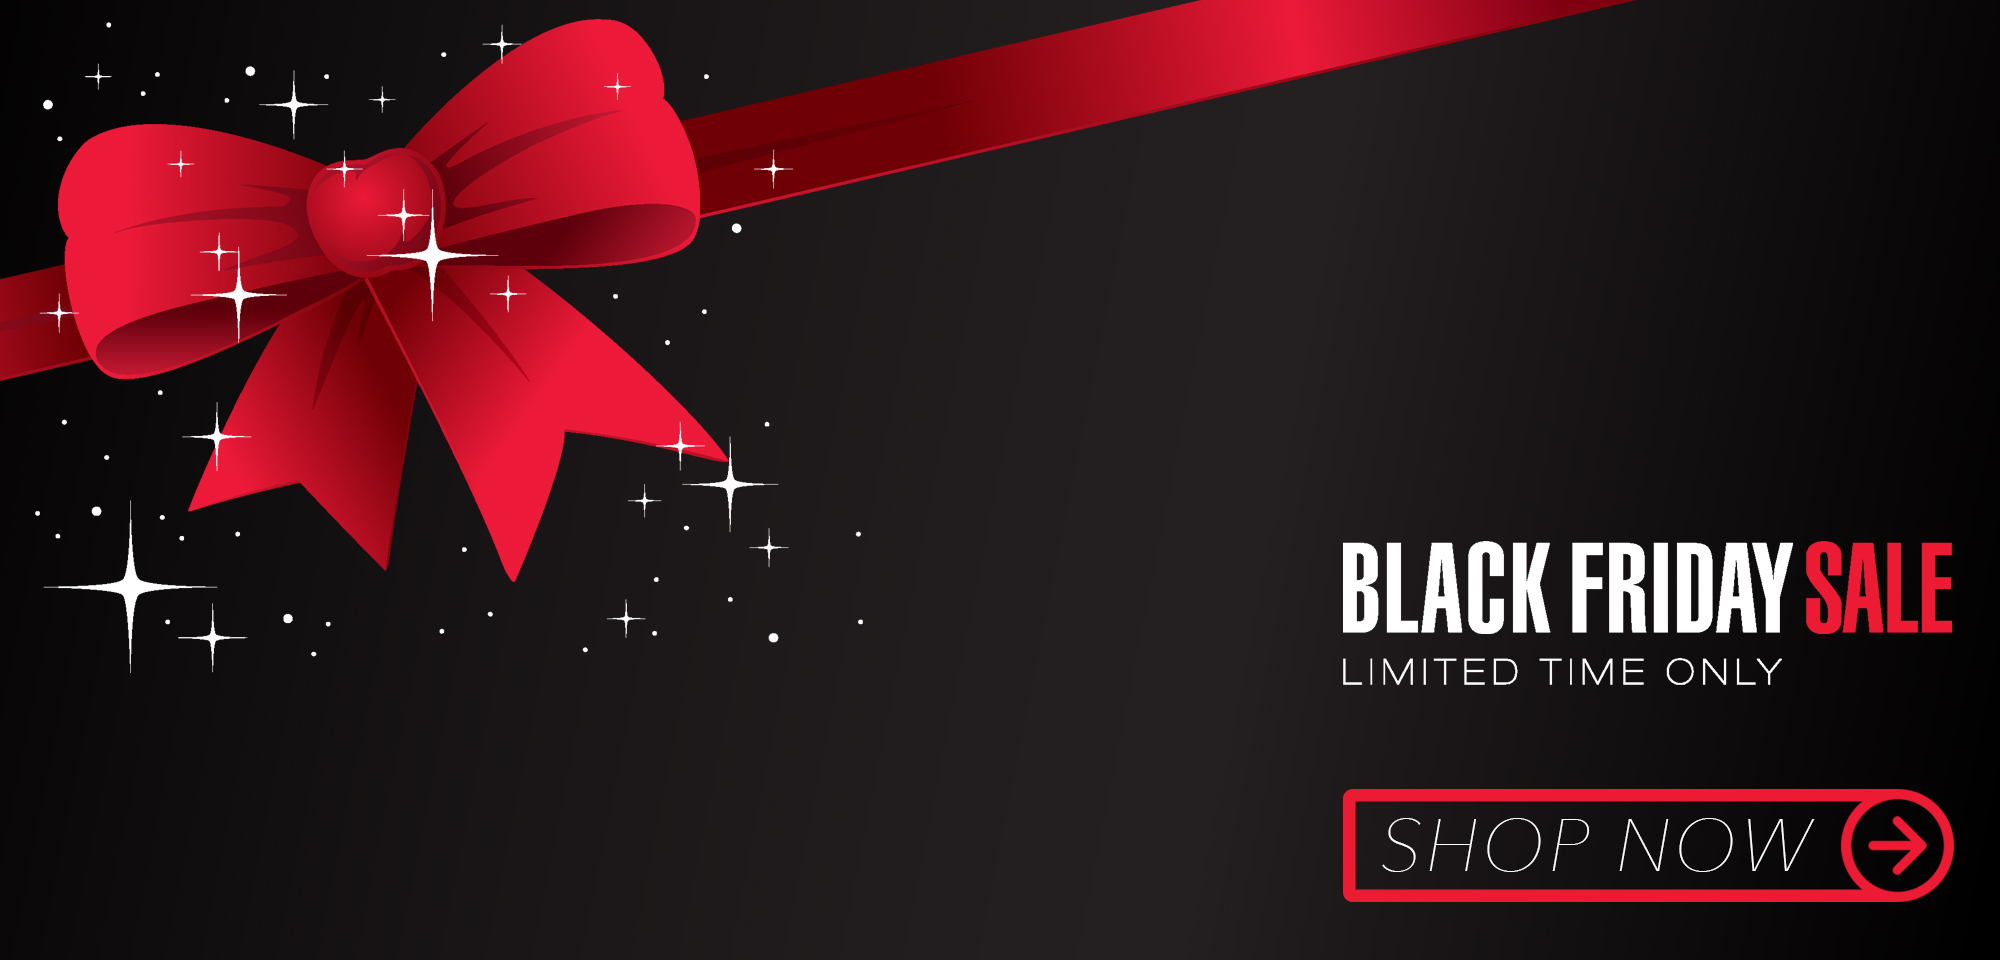 Black Friday, Cyber Monday 2020 Sale - Limited Time Only - Shop Now